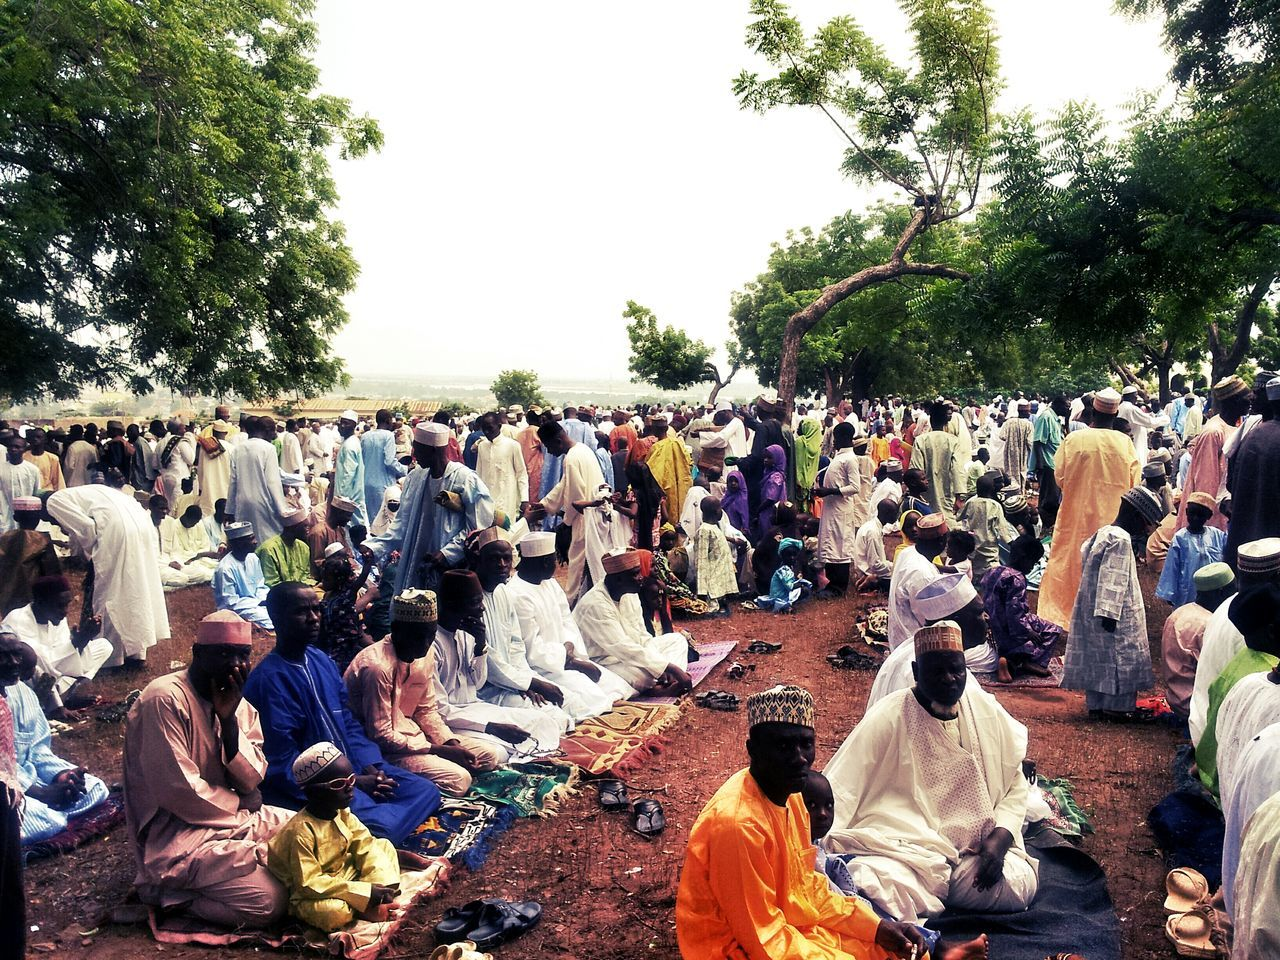 Crowd Resting On Field During Traditional Festival